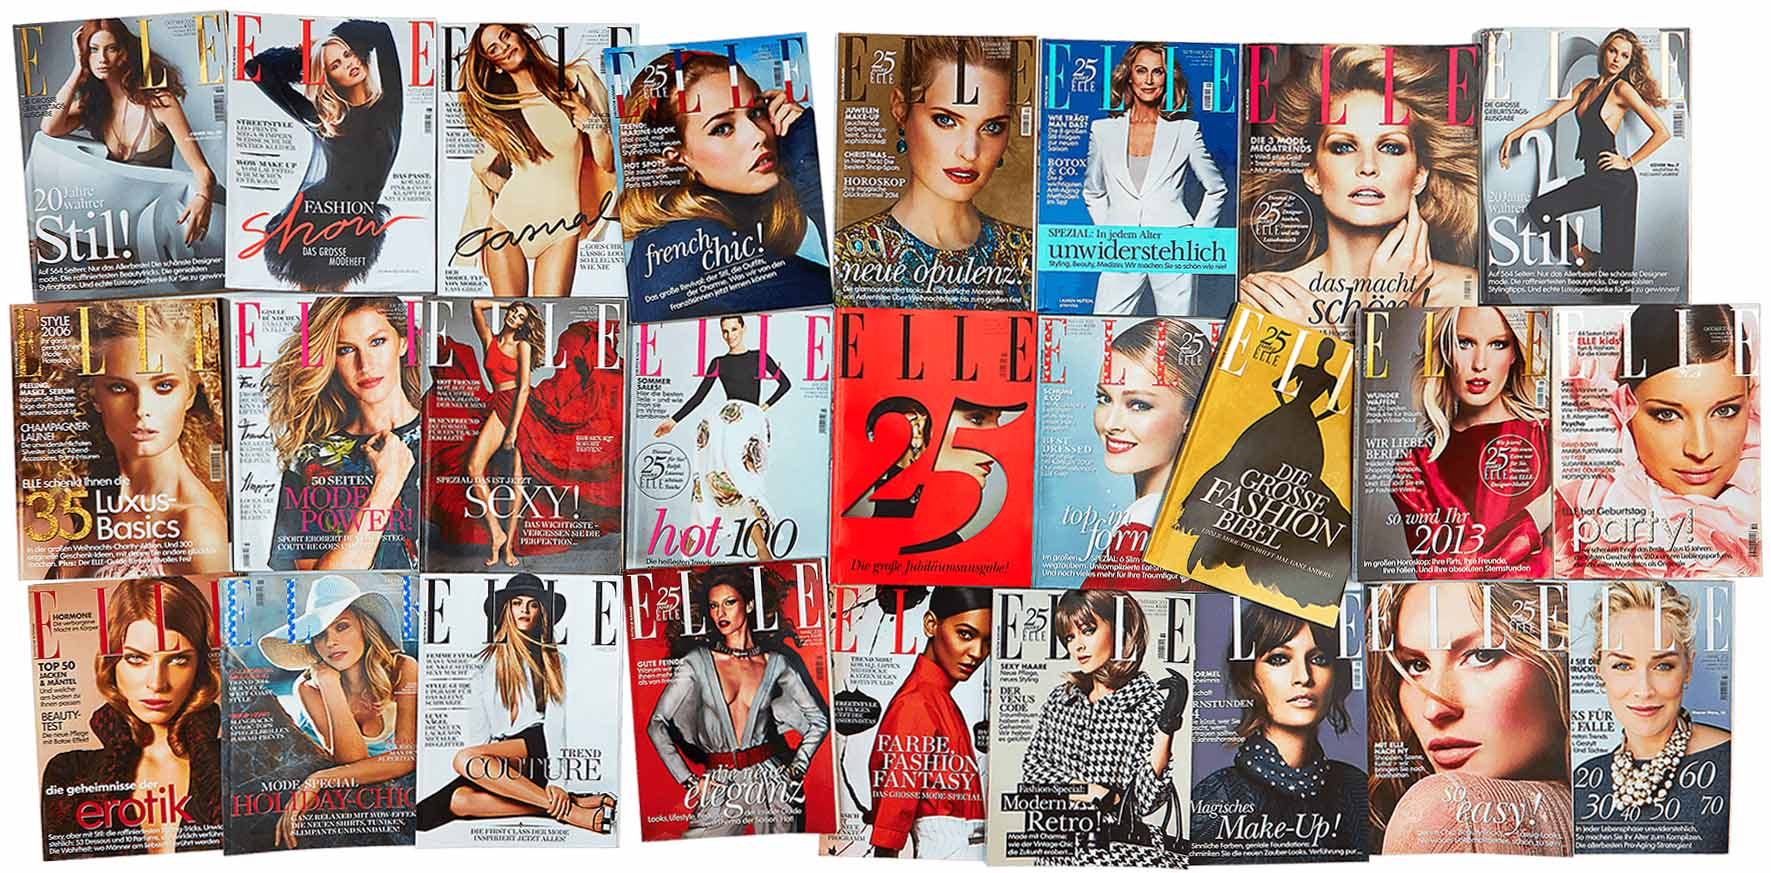 Elle-Magazin / Burda Hearst Publishing